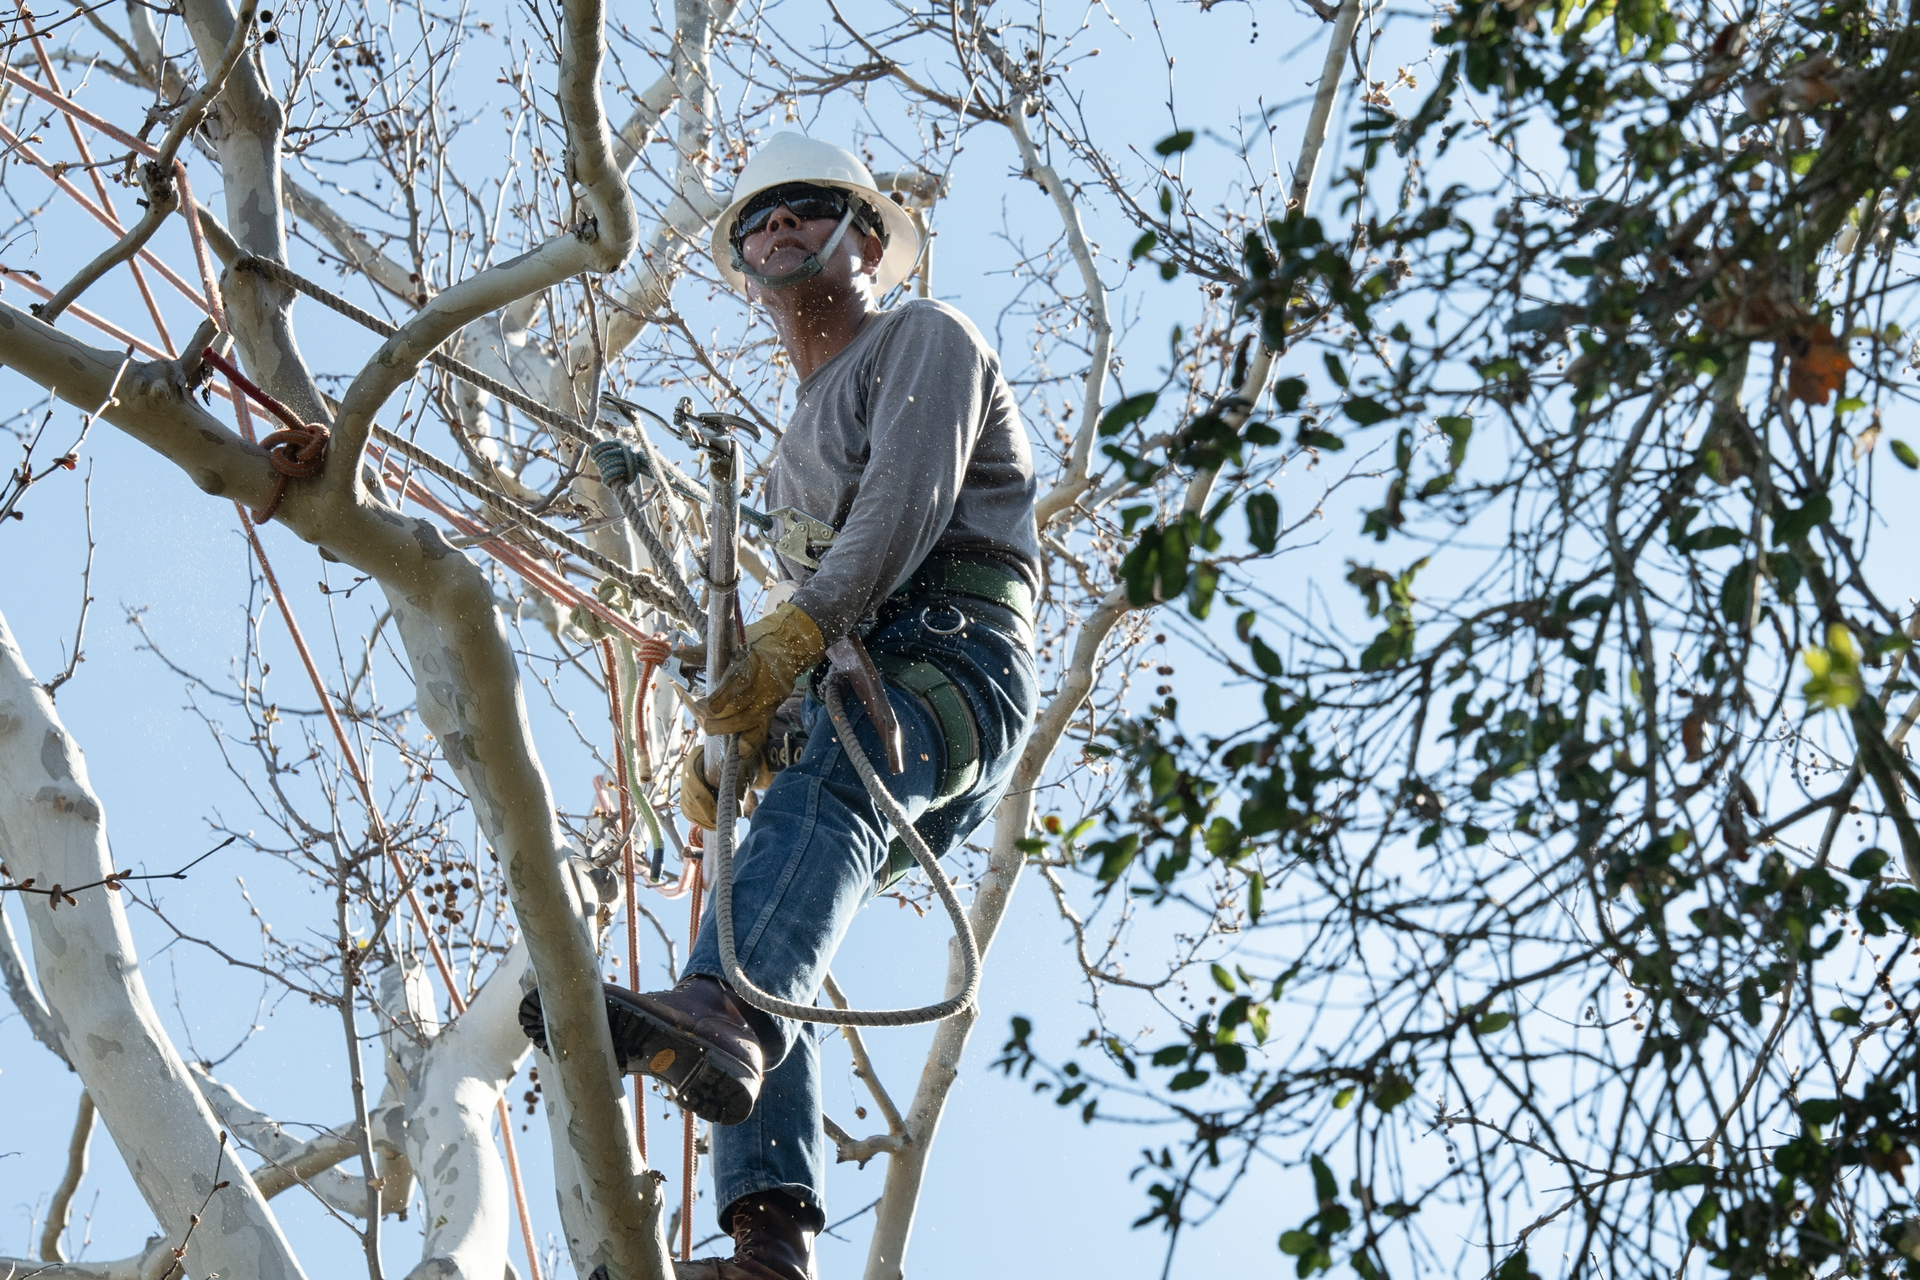 One of SCE's goals is to locate tree branches encroaching on power lines in fire-prone communities.